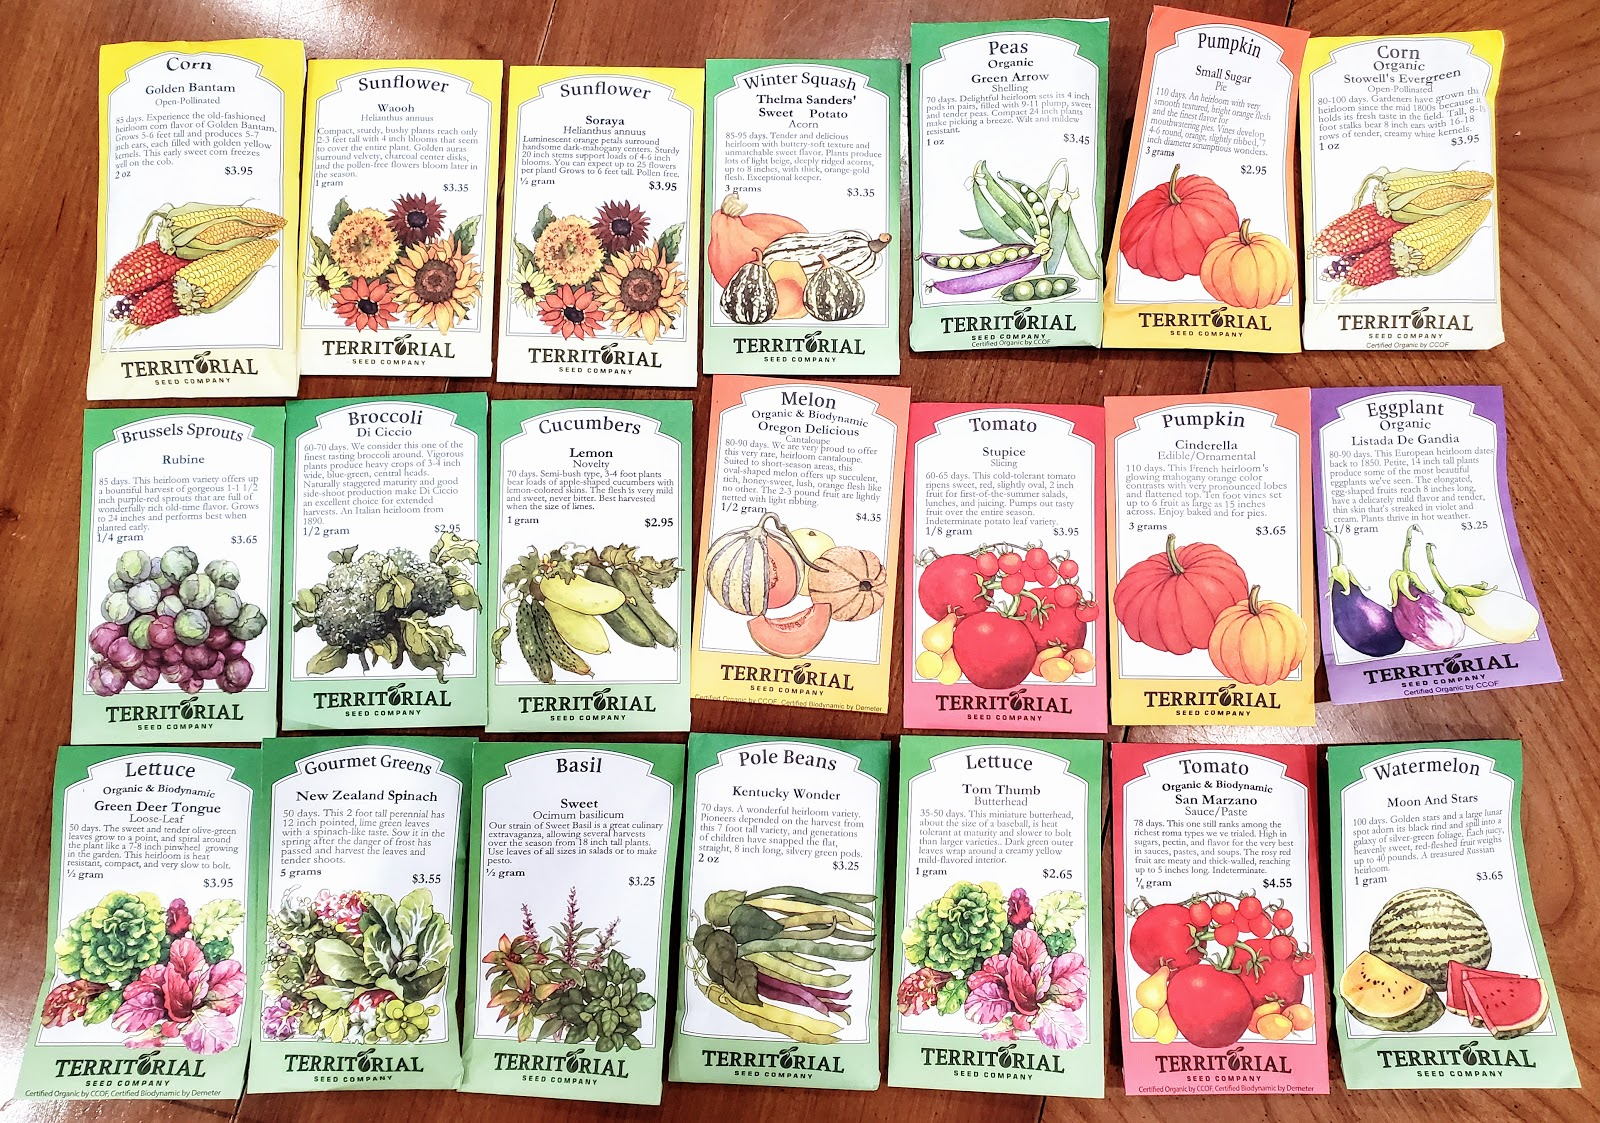 Heirloom seeds from territorial seed company